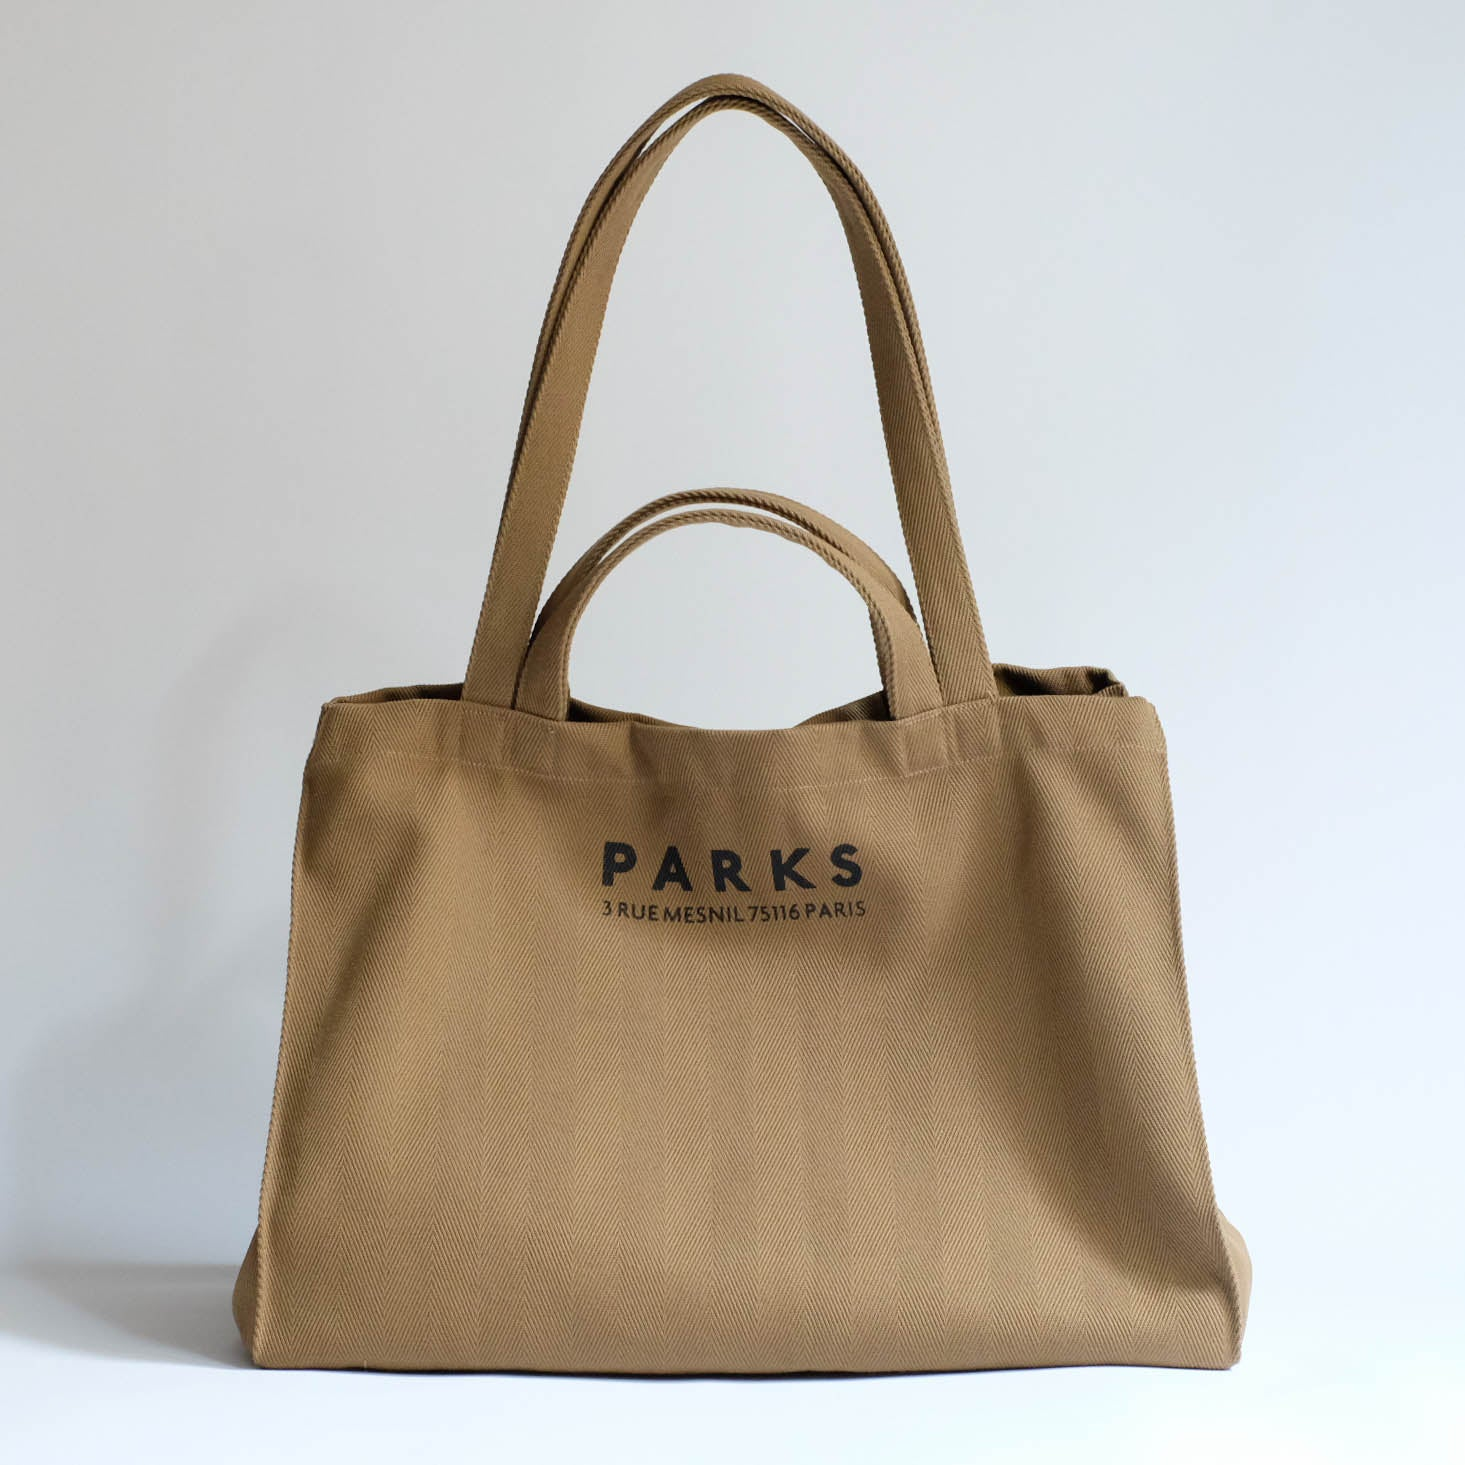 PARKS Paris EXCLUSIVE BAG BEIGE